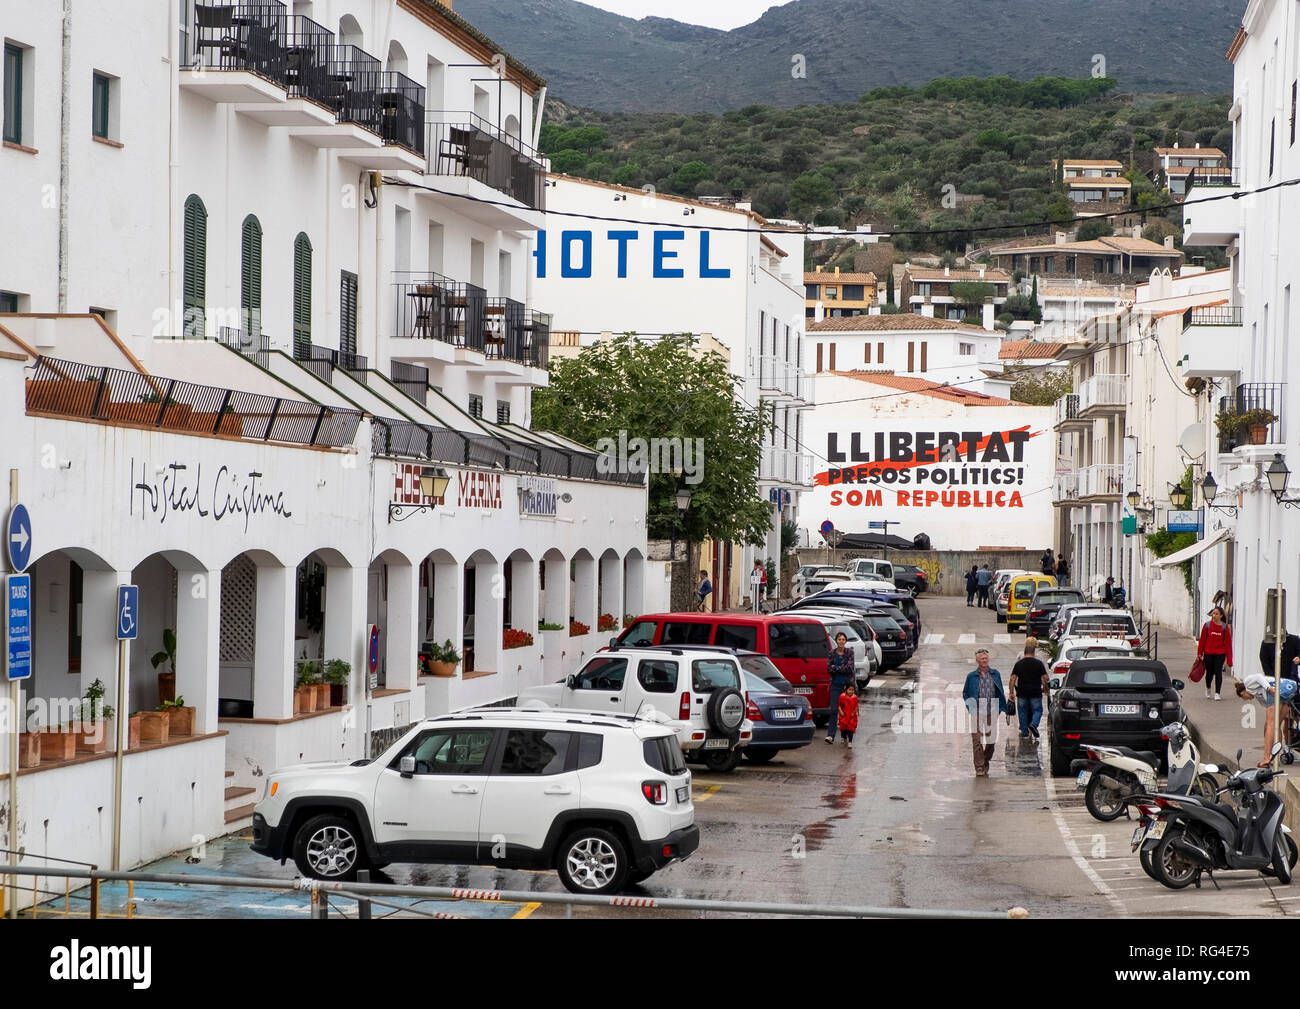 Streets of Cadaques, Catalonia - the Llibertat sign loosely translates as - Freedom for political prisoners, we are a republic - Stock Image